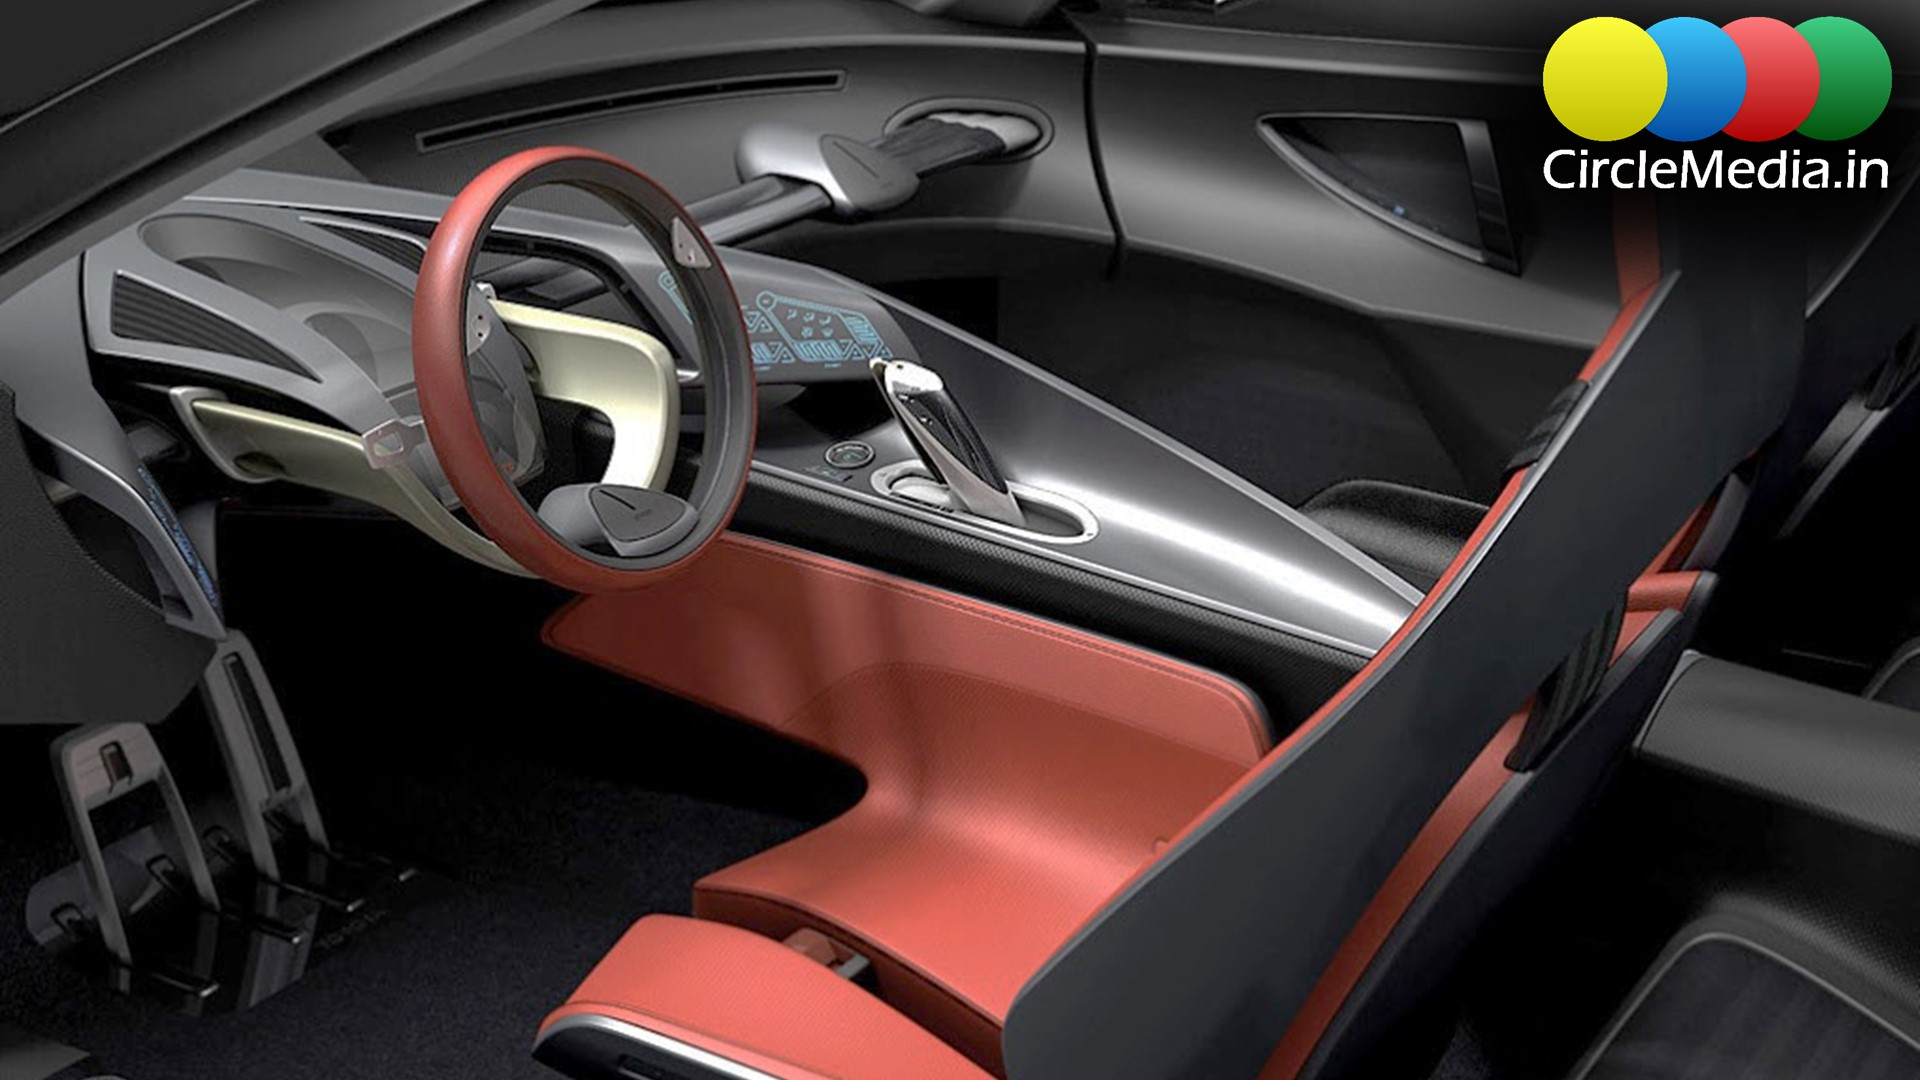 Famous Cars Dashboards and Steering Wheels